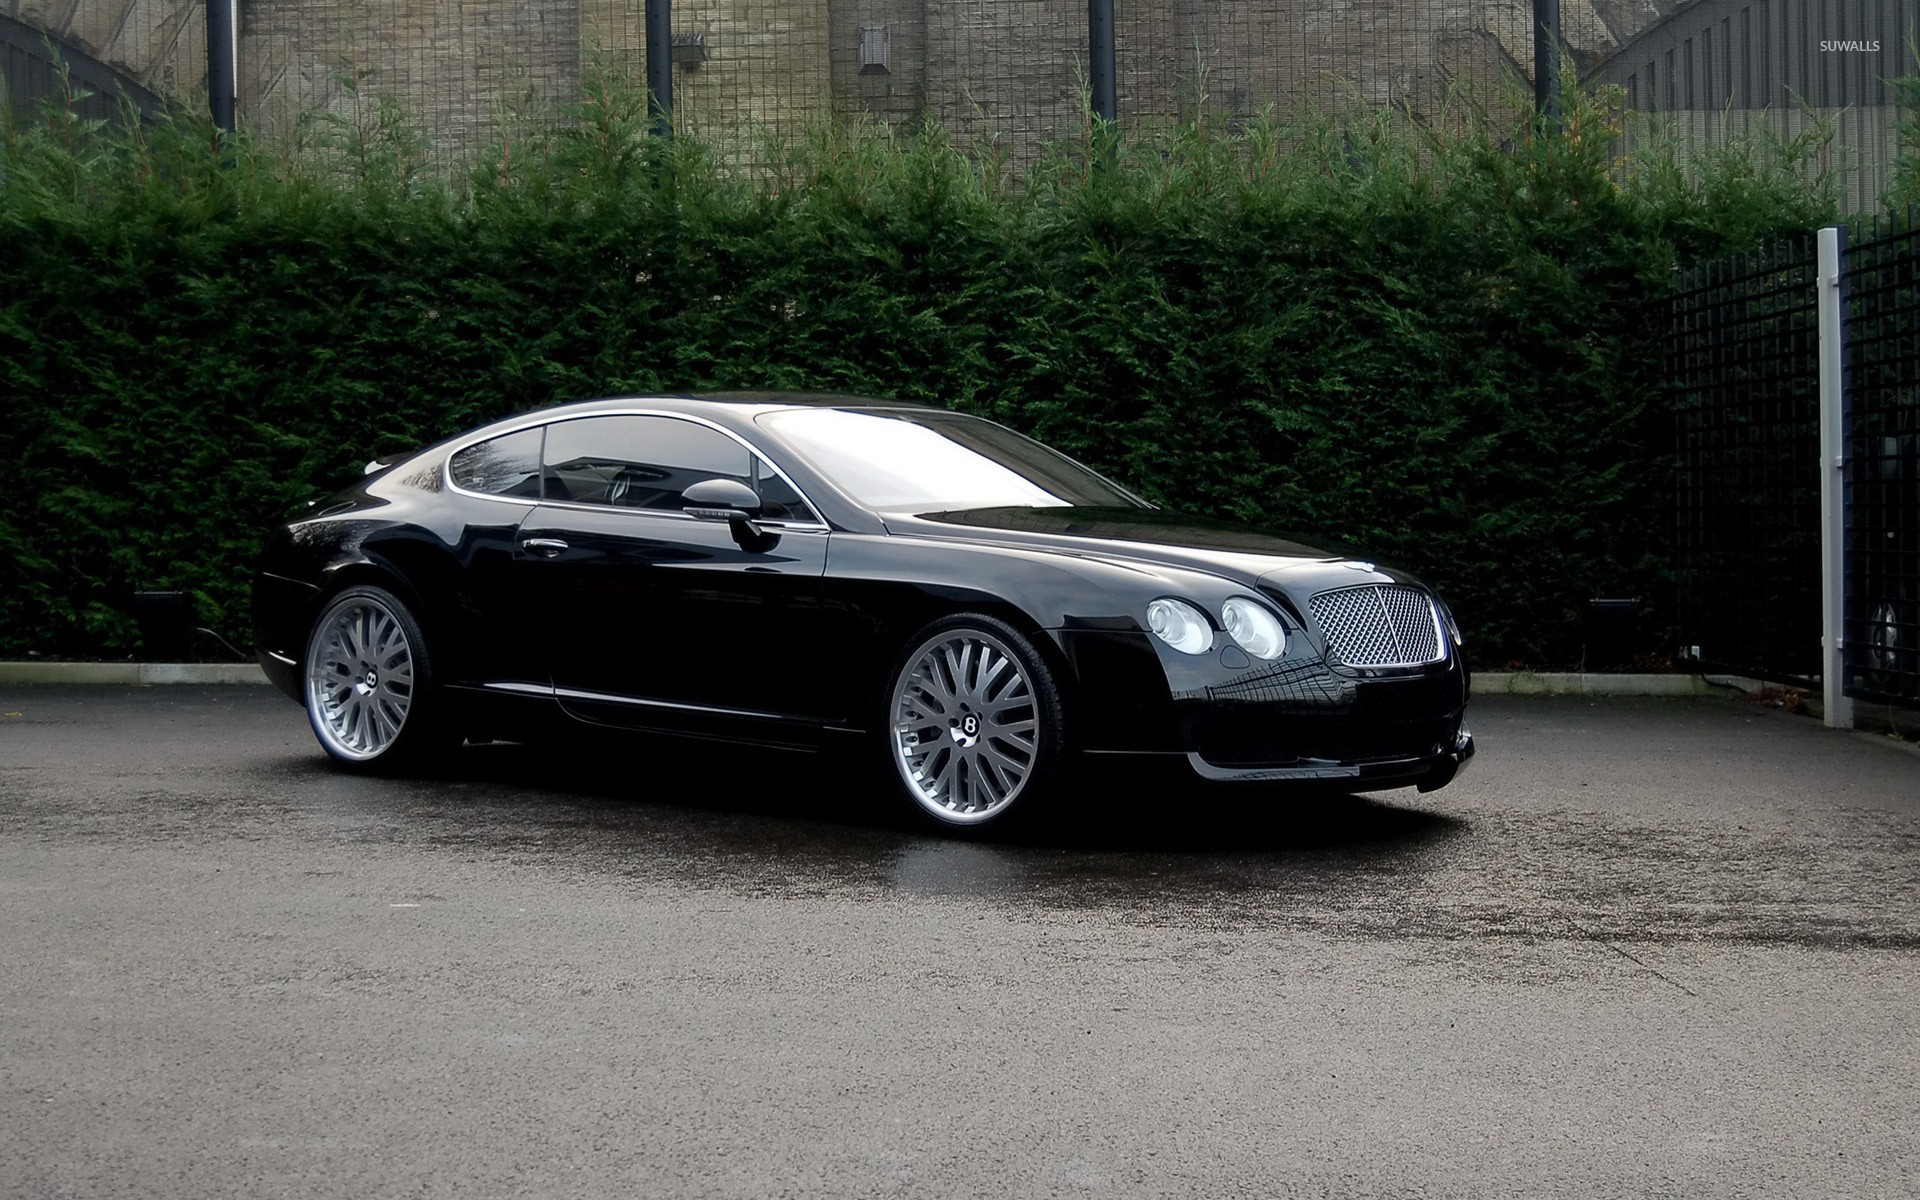 Side View Of A Black Bentley Continental Gt Wallpaper